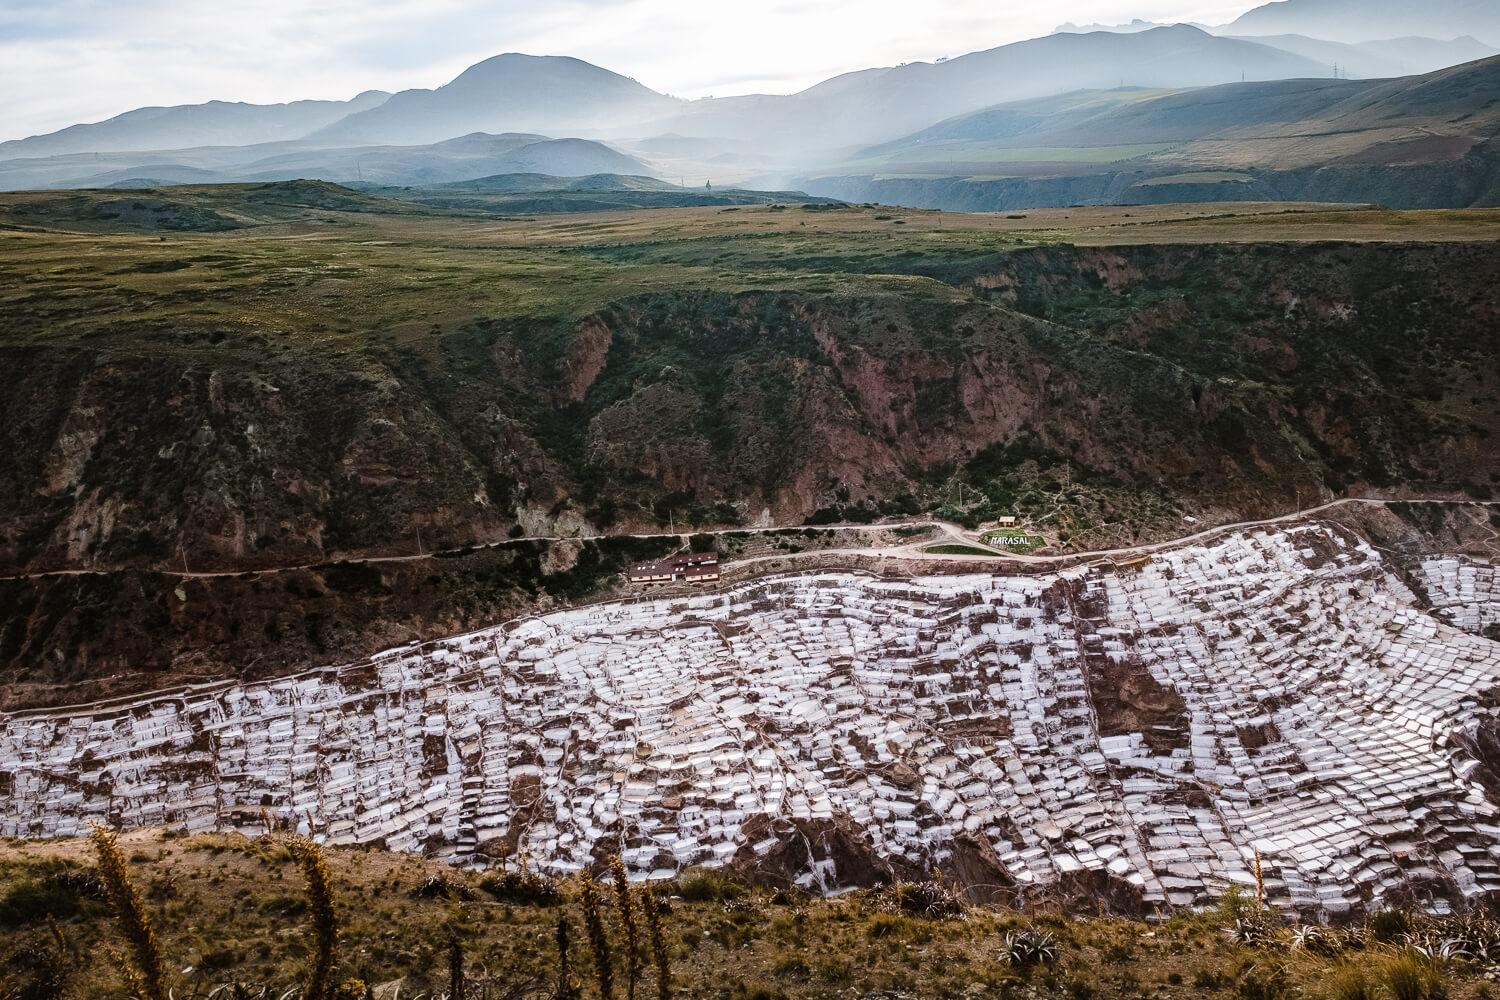 """The Maras Salt Ponds in The Sacred Valley, Peru. Travel photography and guide by © Natasha Lequepeys for """"And Then I Met Yoko"""". #peru #travelblog #fujifilm"""